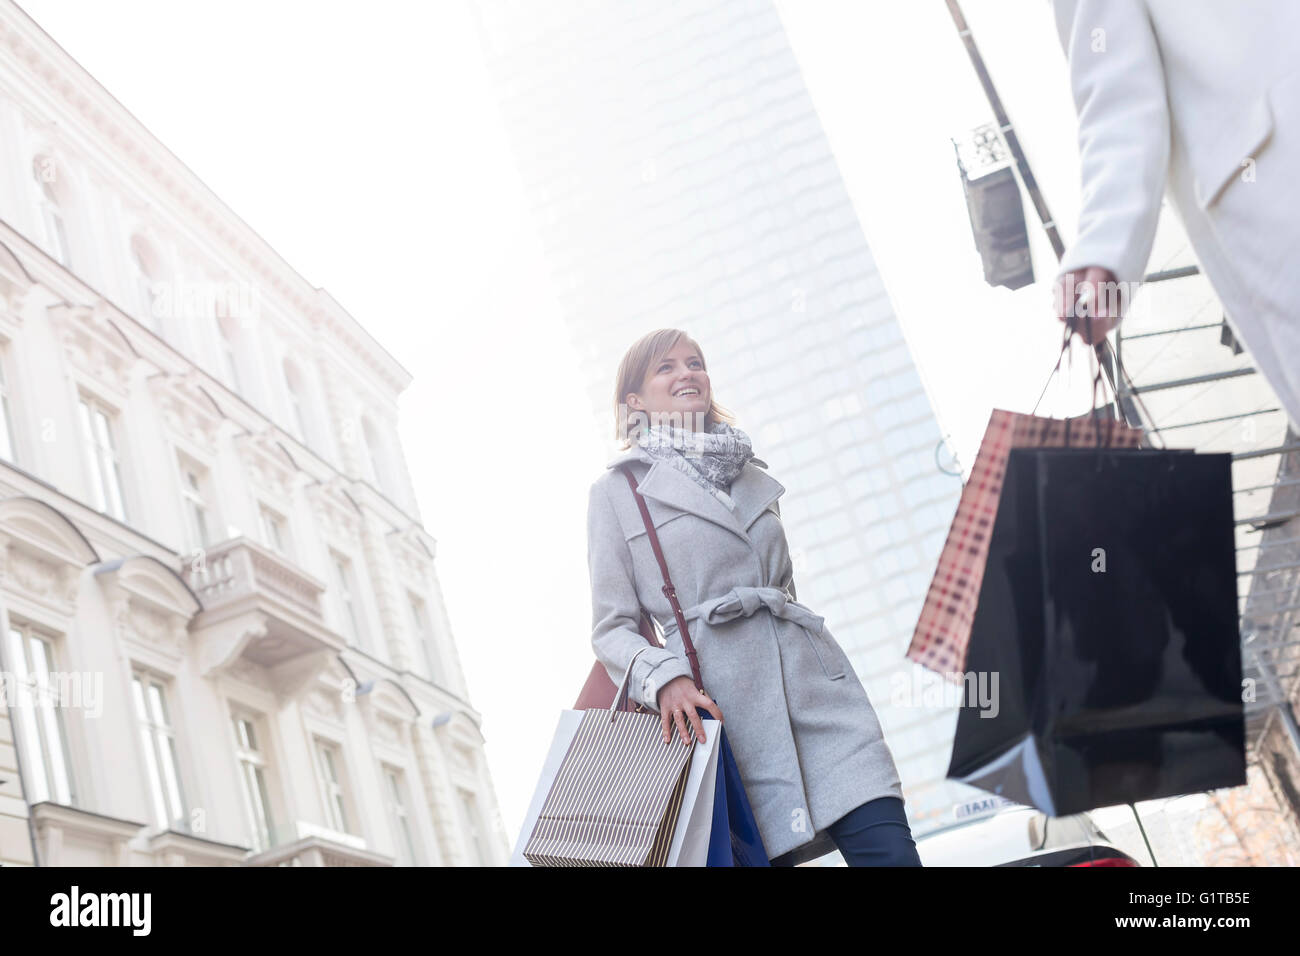 Women with shopping bags crossing city street below highrise - Stock Image